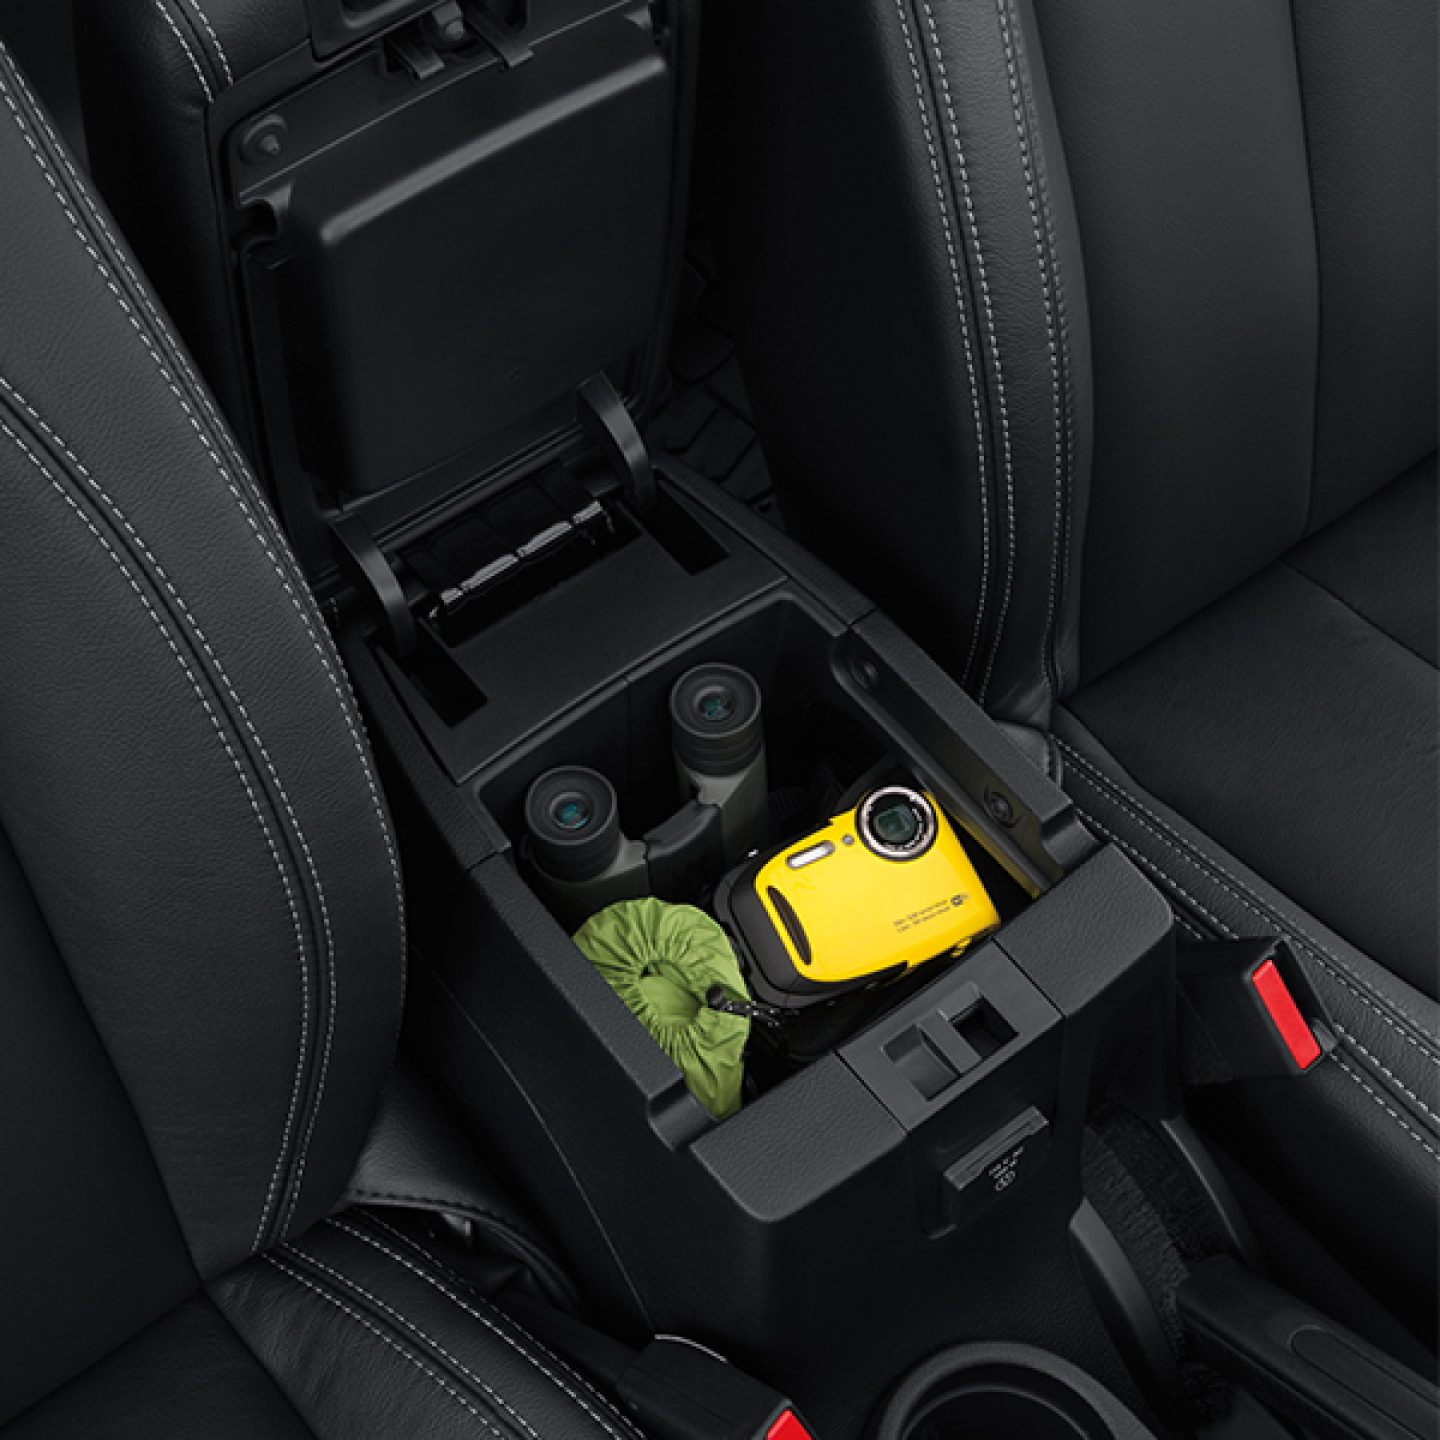 2017 Jeep Wrangler Interior Lockable Centre Console